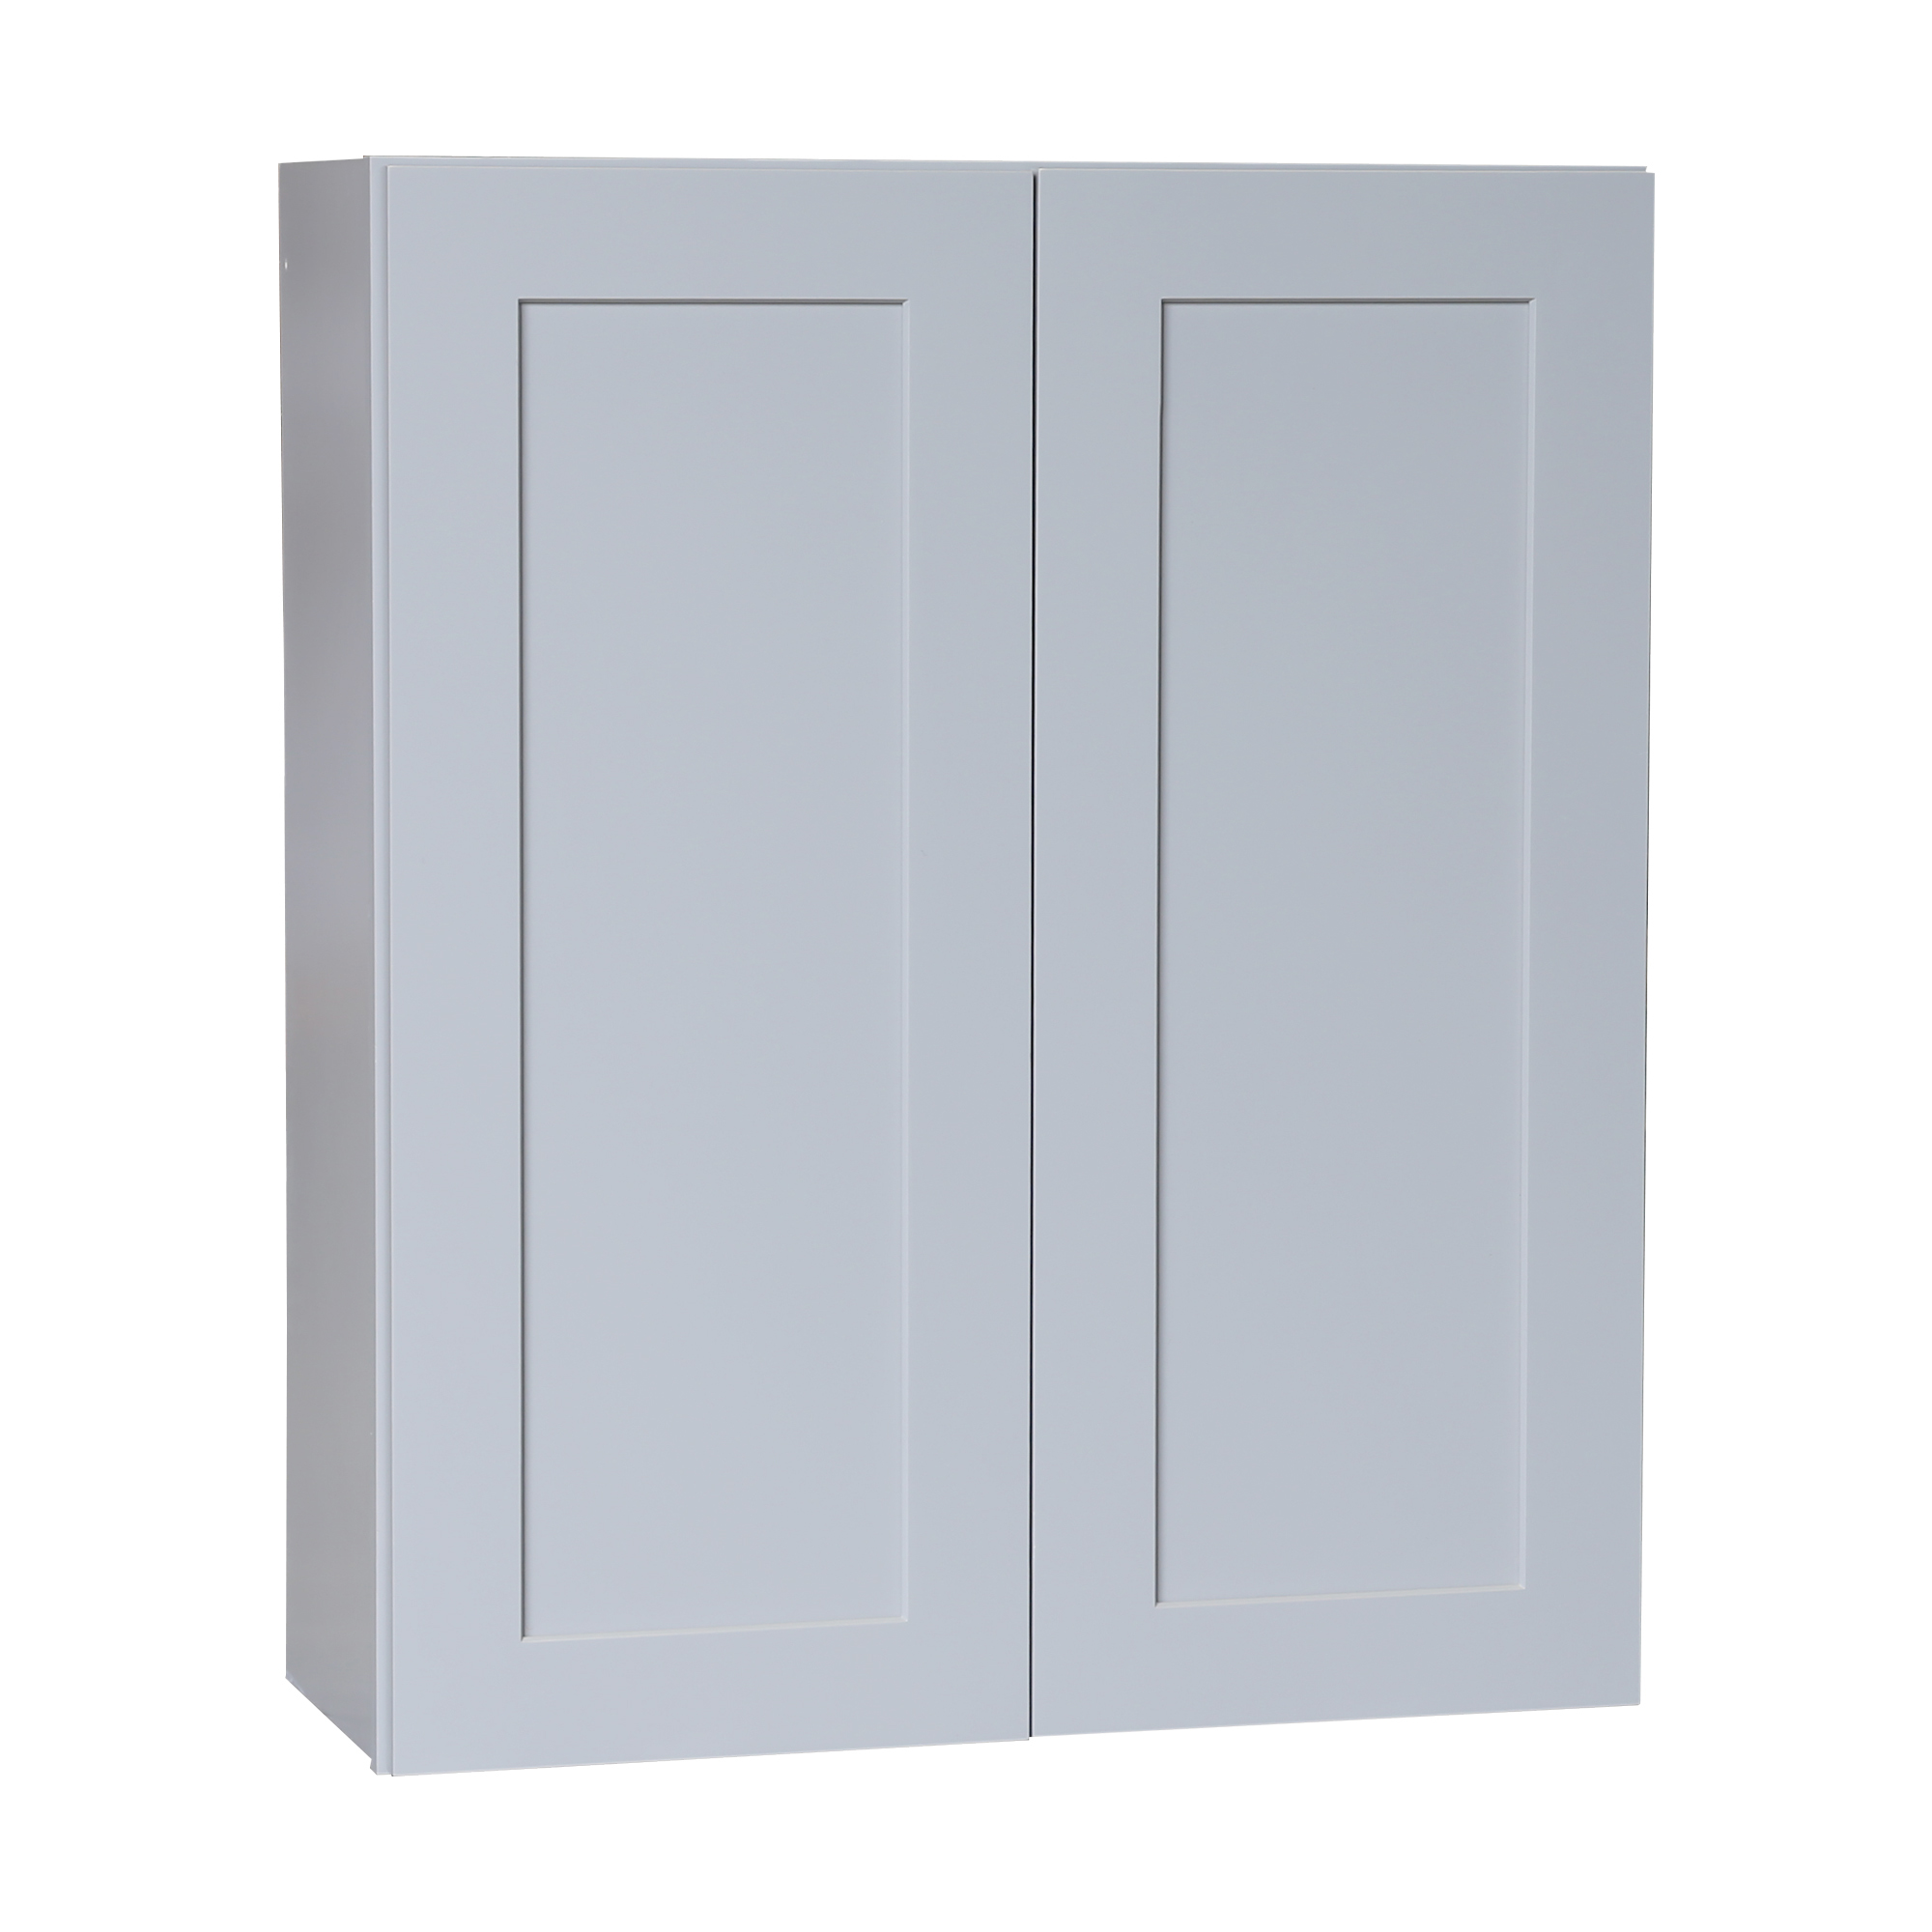 Ready to Assemble 24x21x12 in. Shaker High Double Door Wall Cabinet in Gray